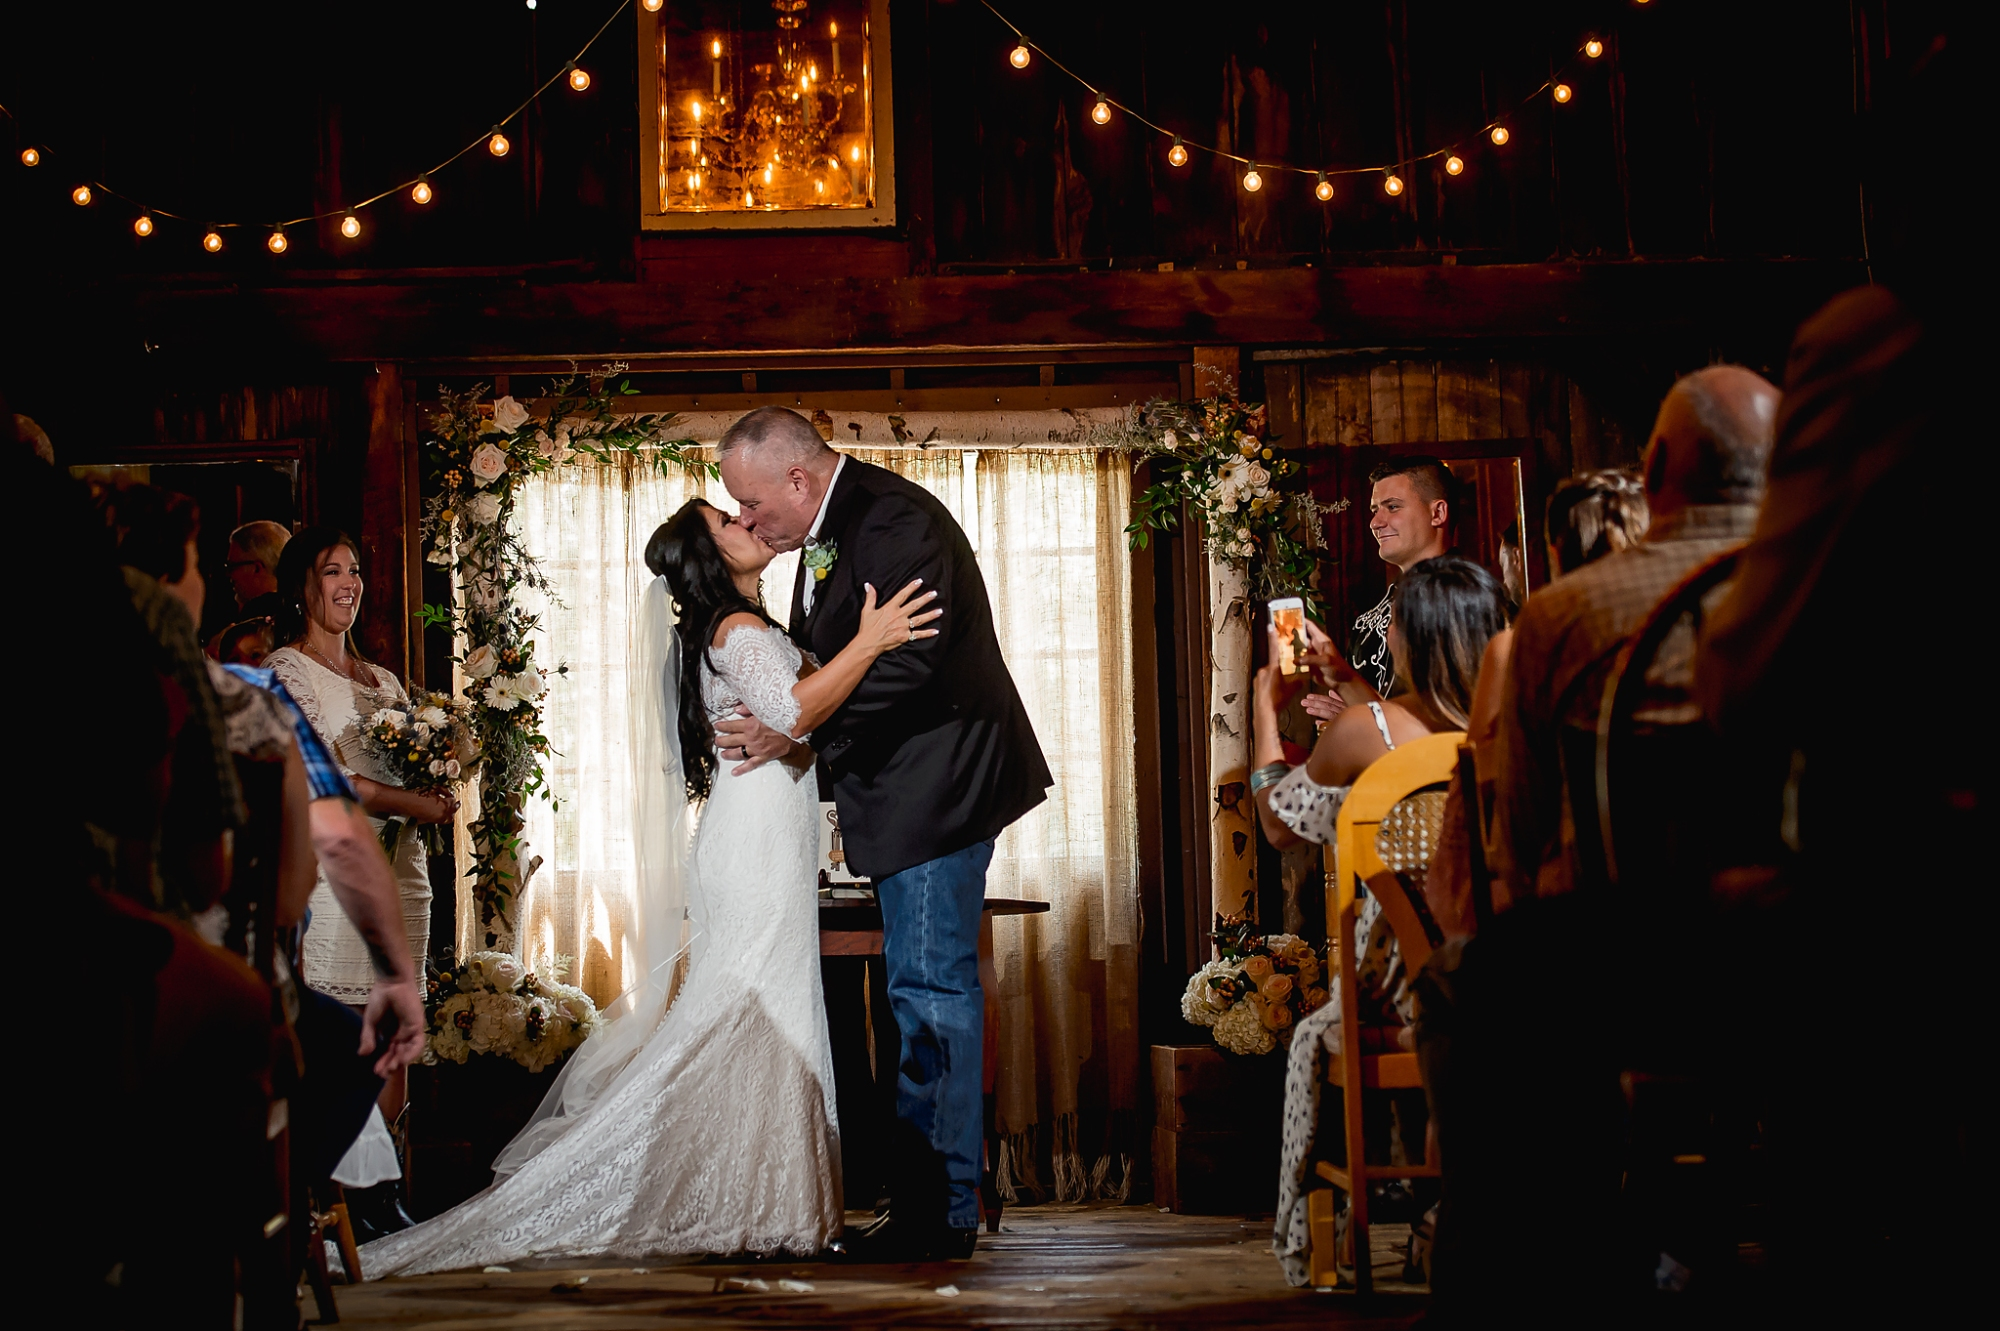 Jacks-Barn-Wedding-Janine-Collette-Photography46